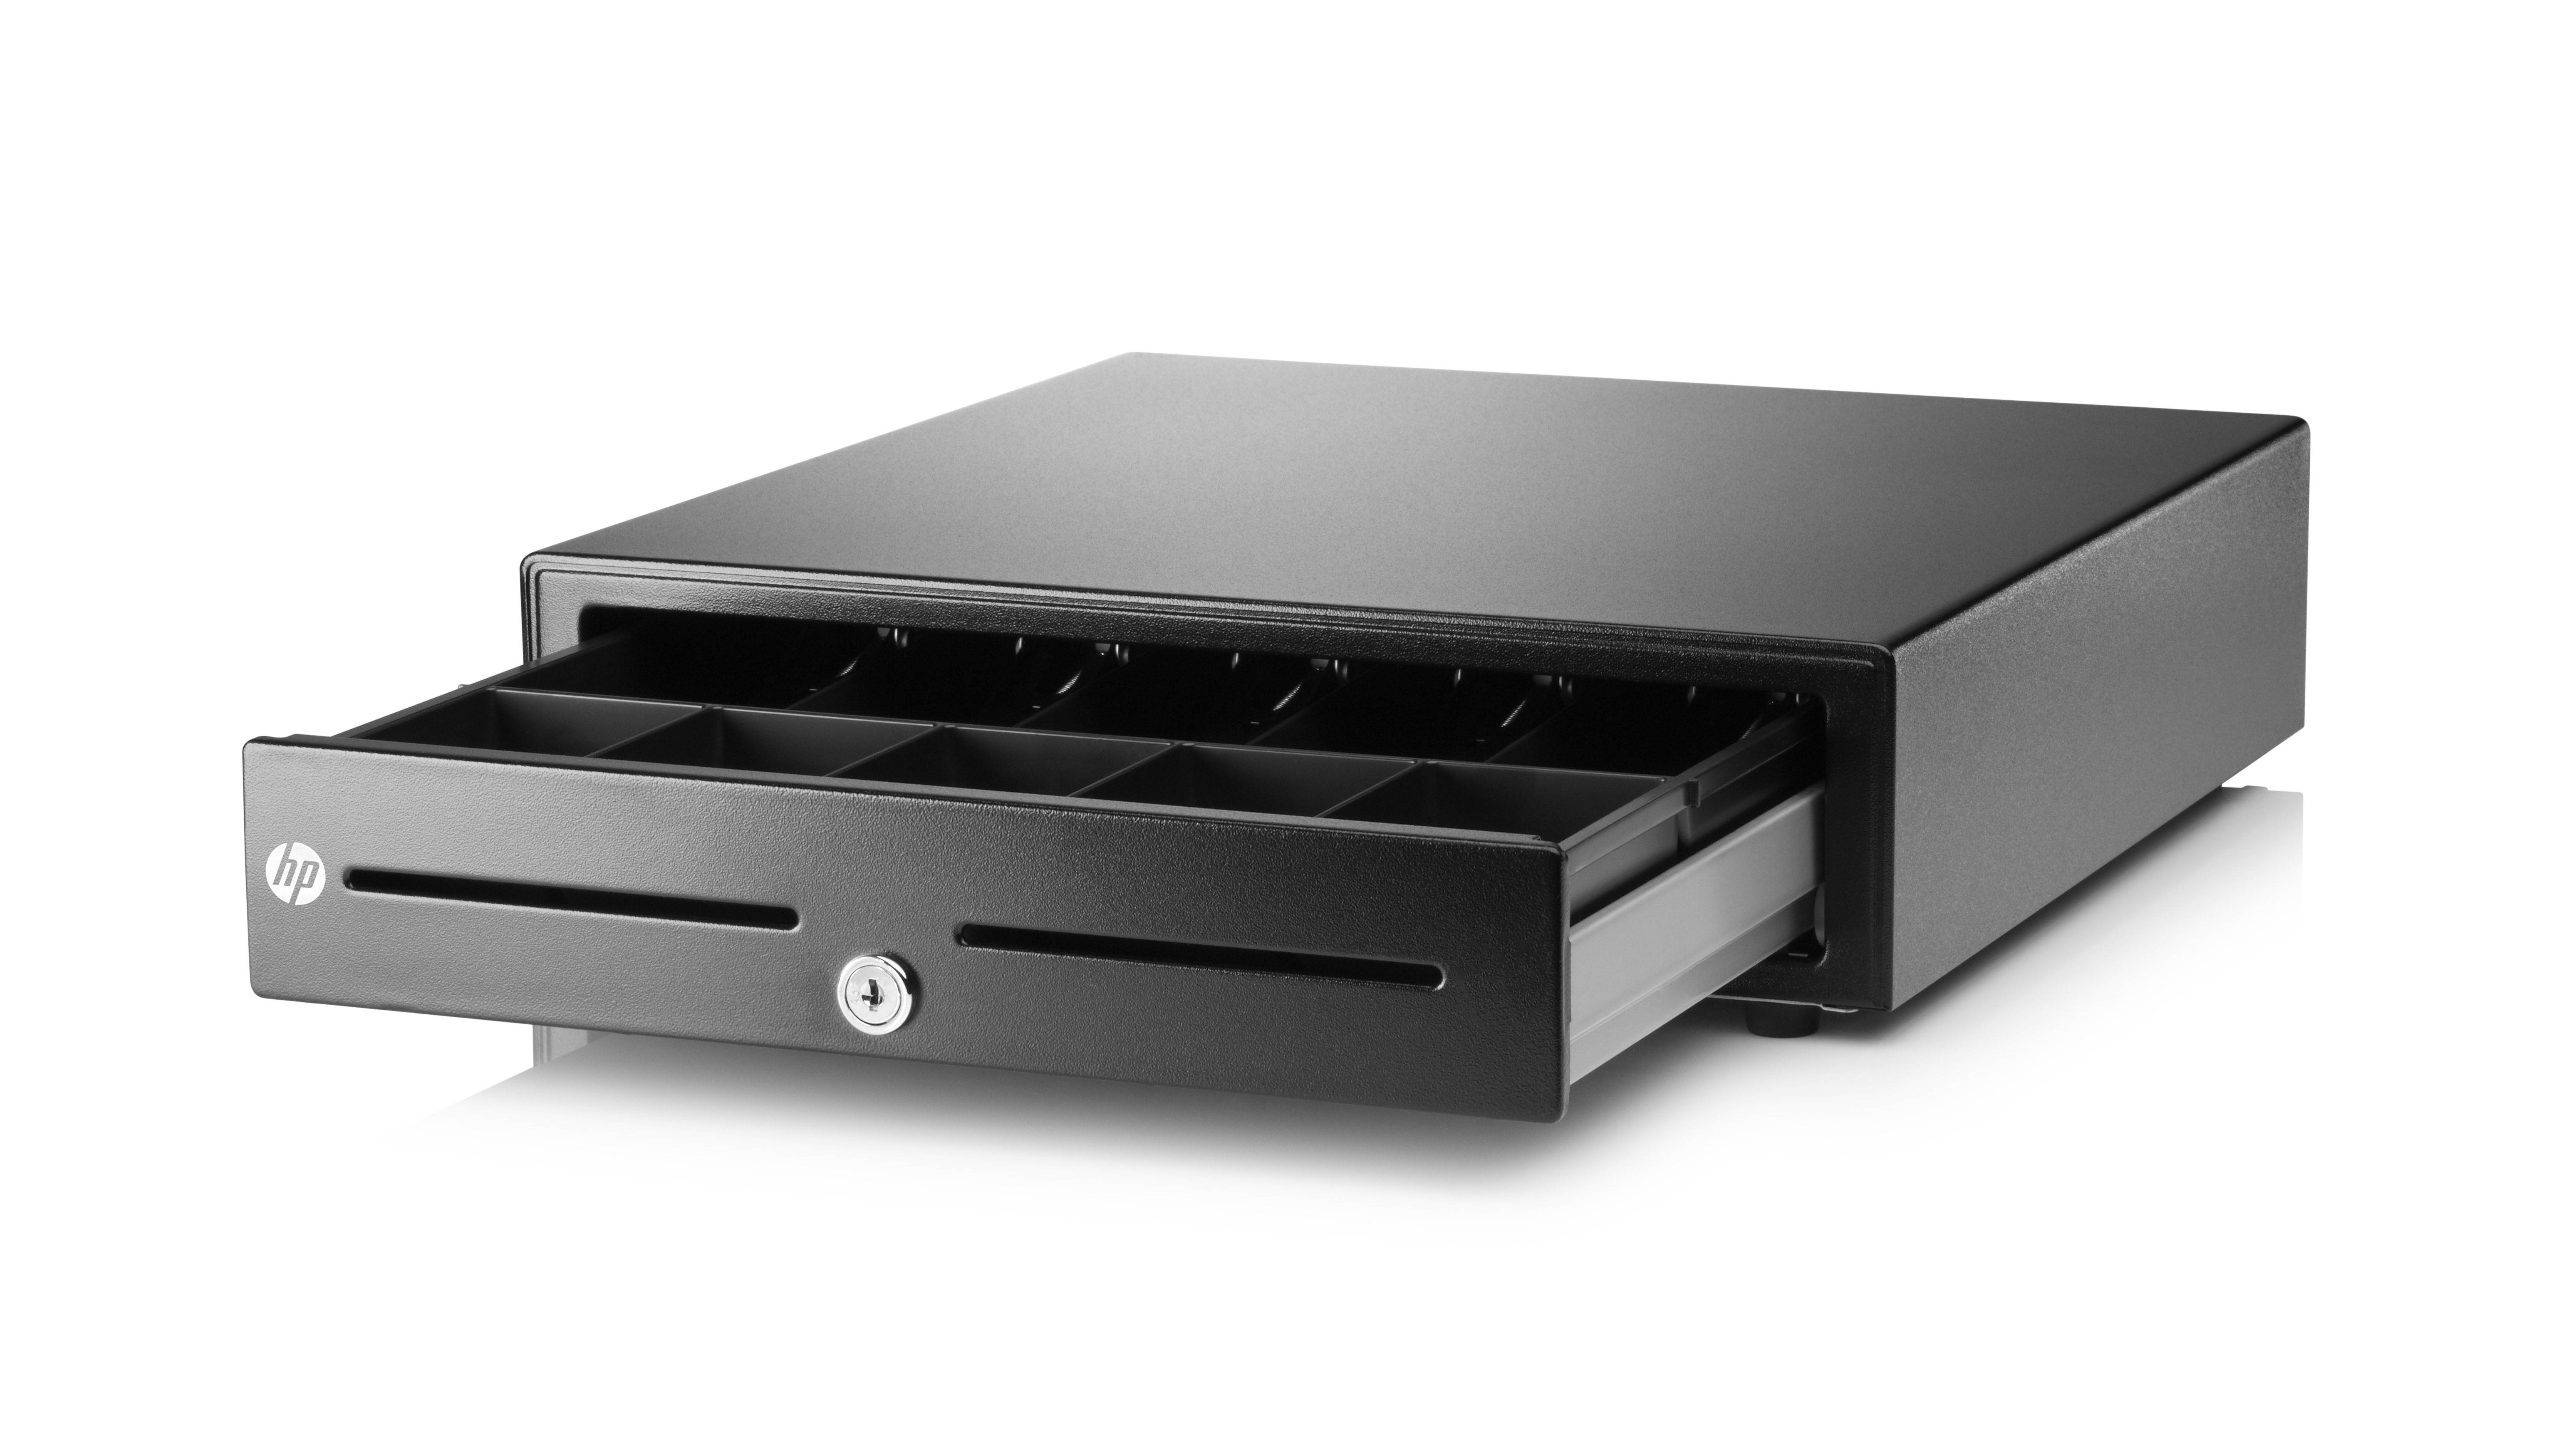 Standard Duty Cash Drawer - Electronic cash drawer - black - for ElitePOS G1 Retail System Engage One 14X MX12 RP9 G1 Retail System TX1 POS Solution